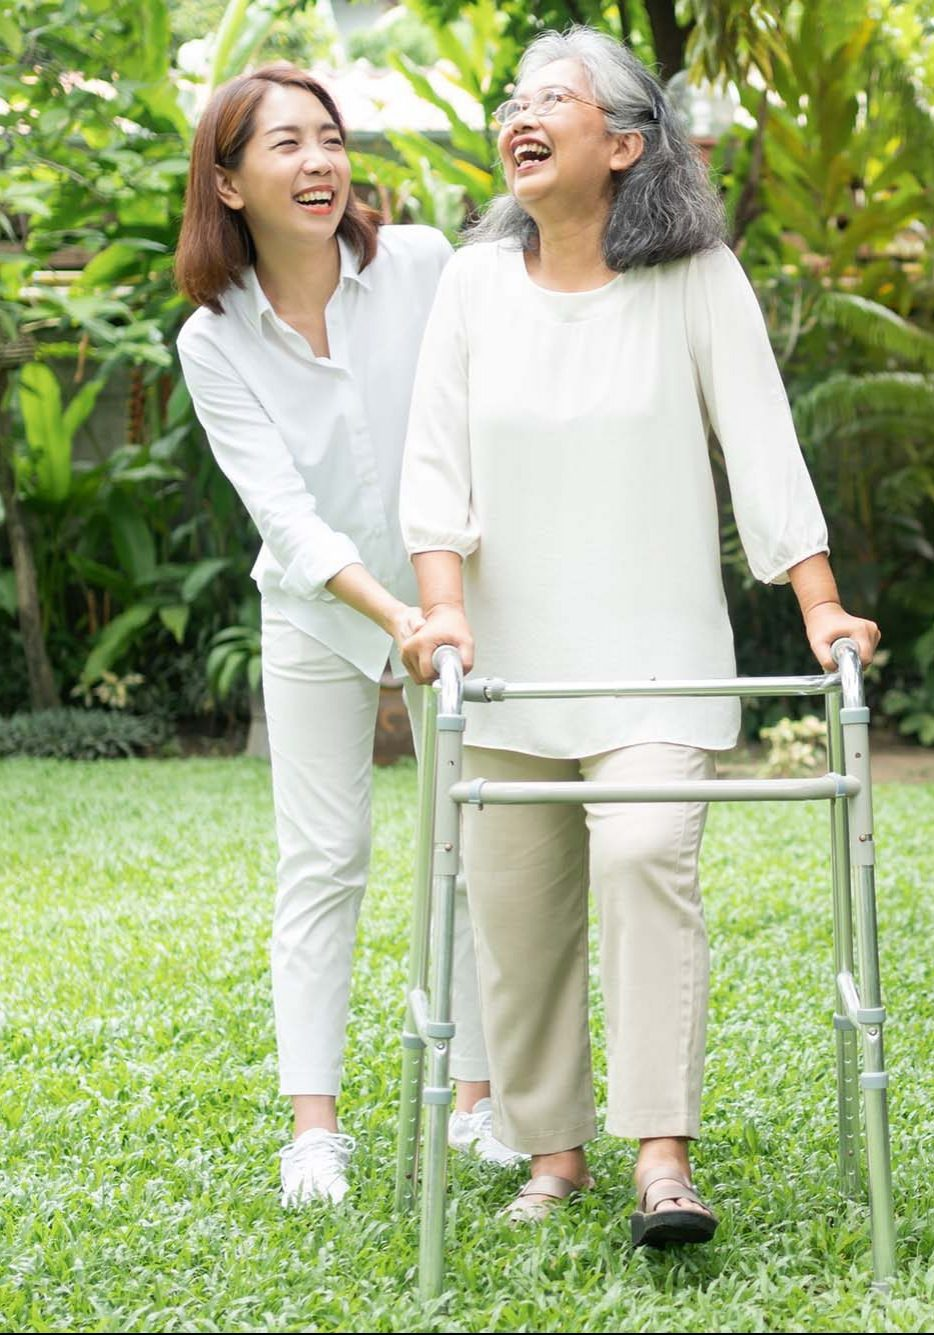 Smiling elderly woman and carer